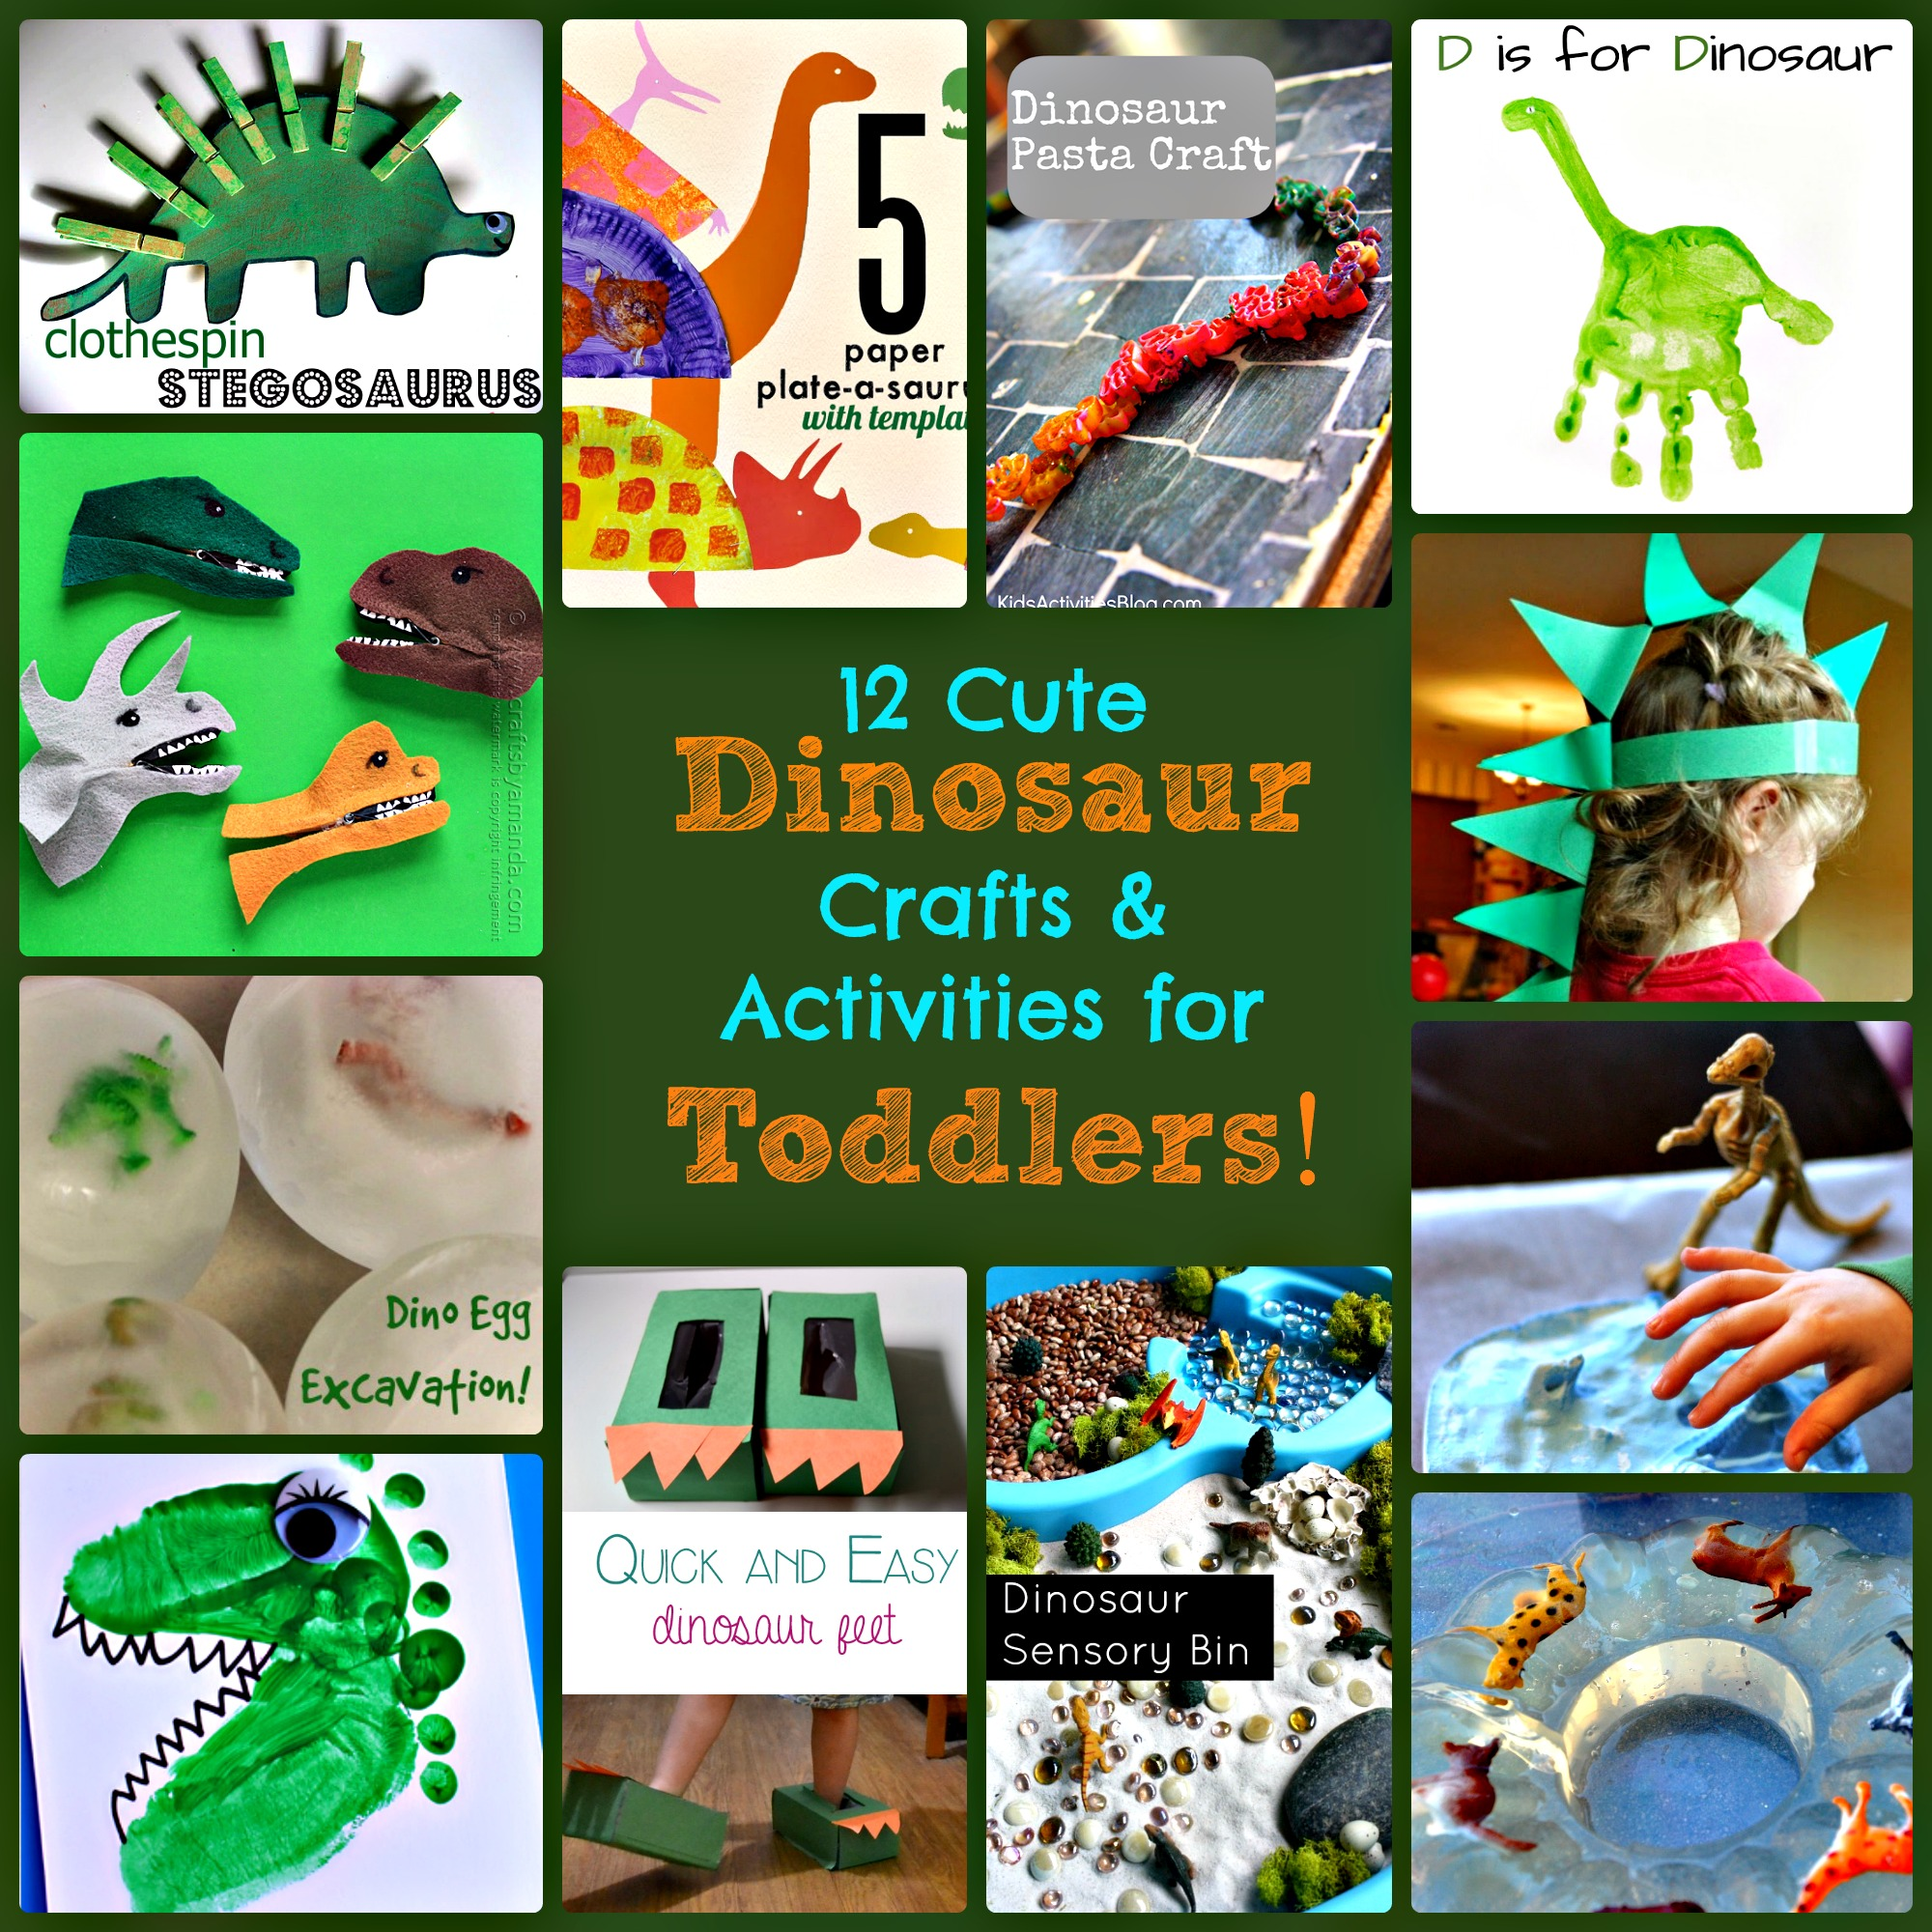 12 Cute Dinosaur Crafts and Activities for Toddlers!